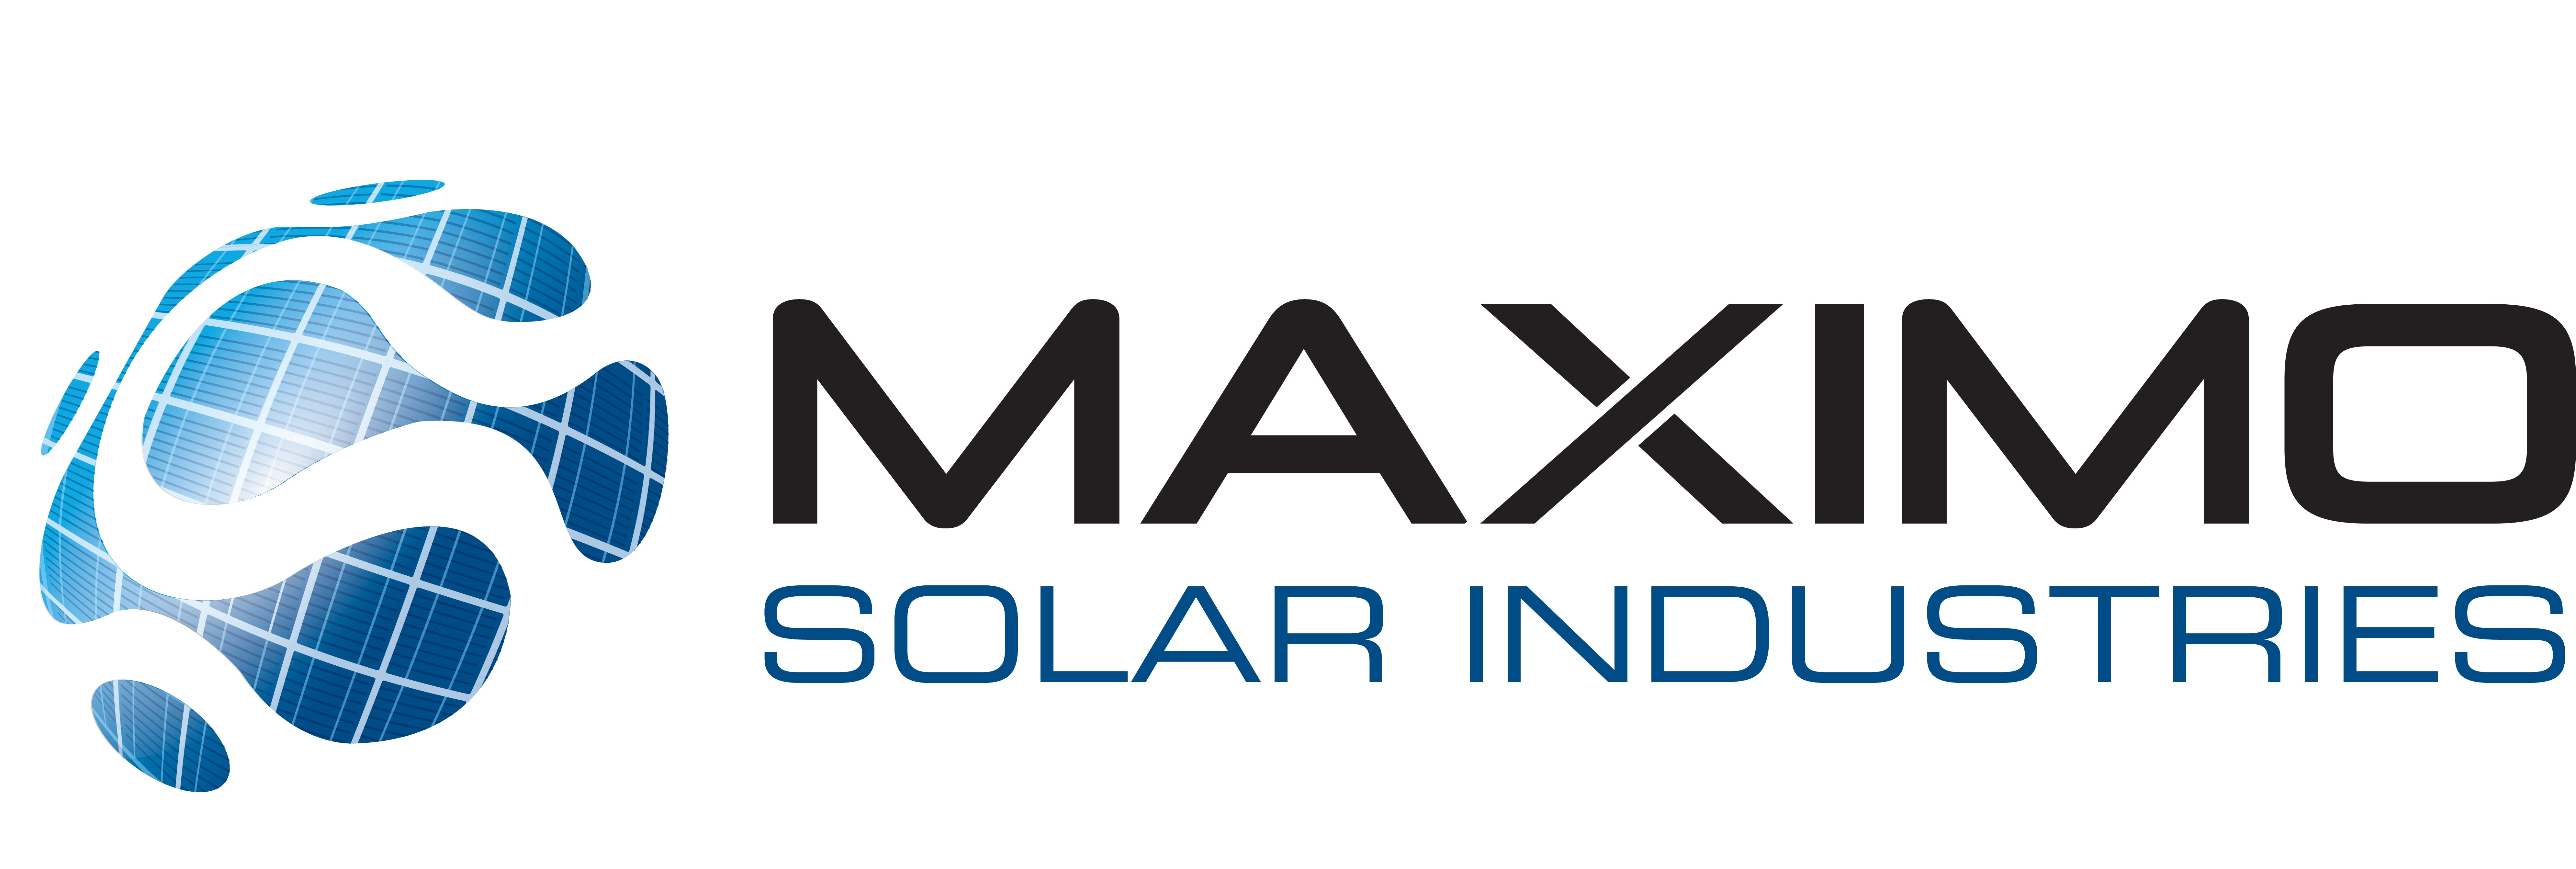 Maximo Solar Industries Reviews | Maximo Solar Industries ...